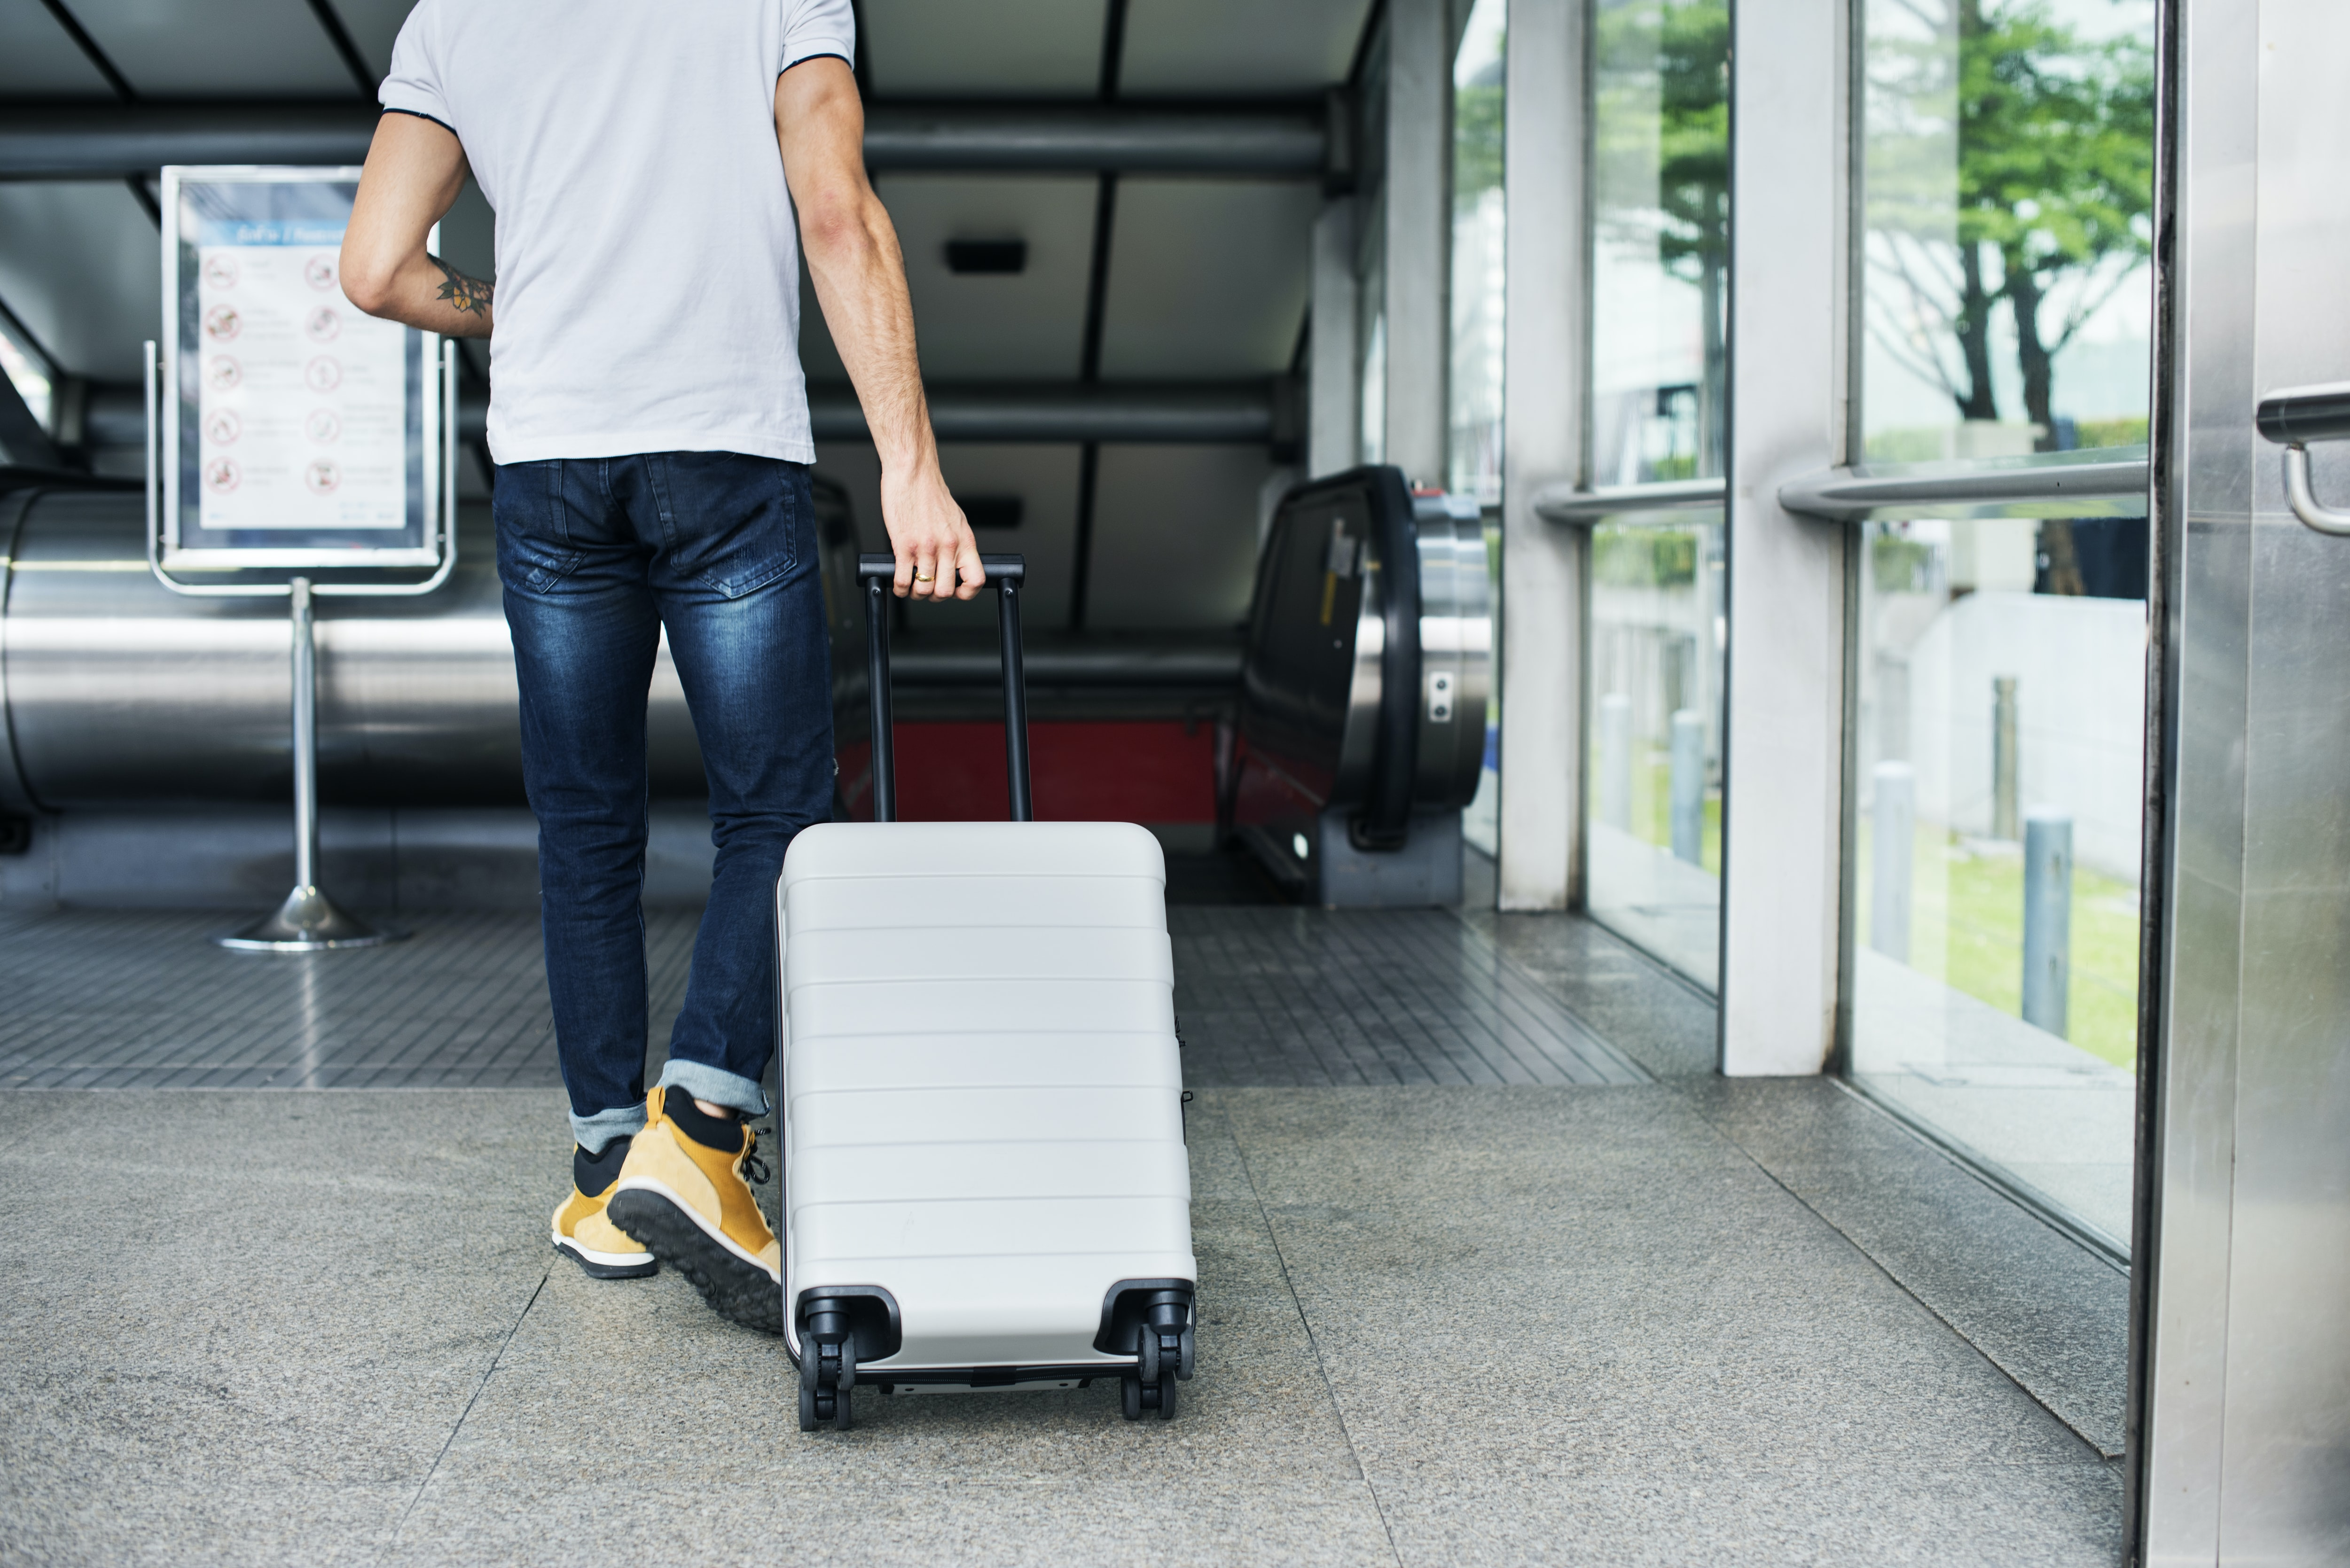 The Essential Laws of Luggage Explained